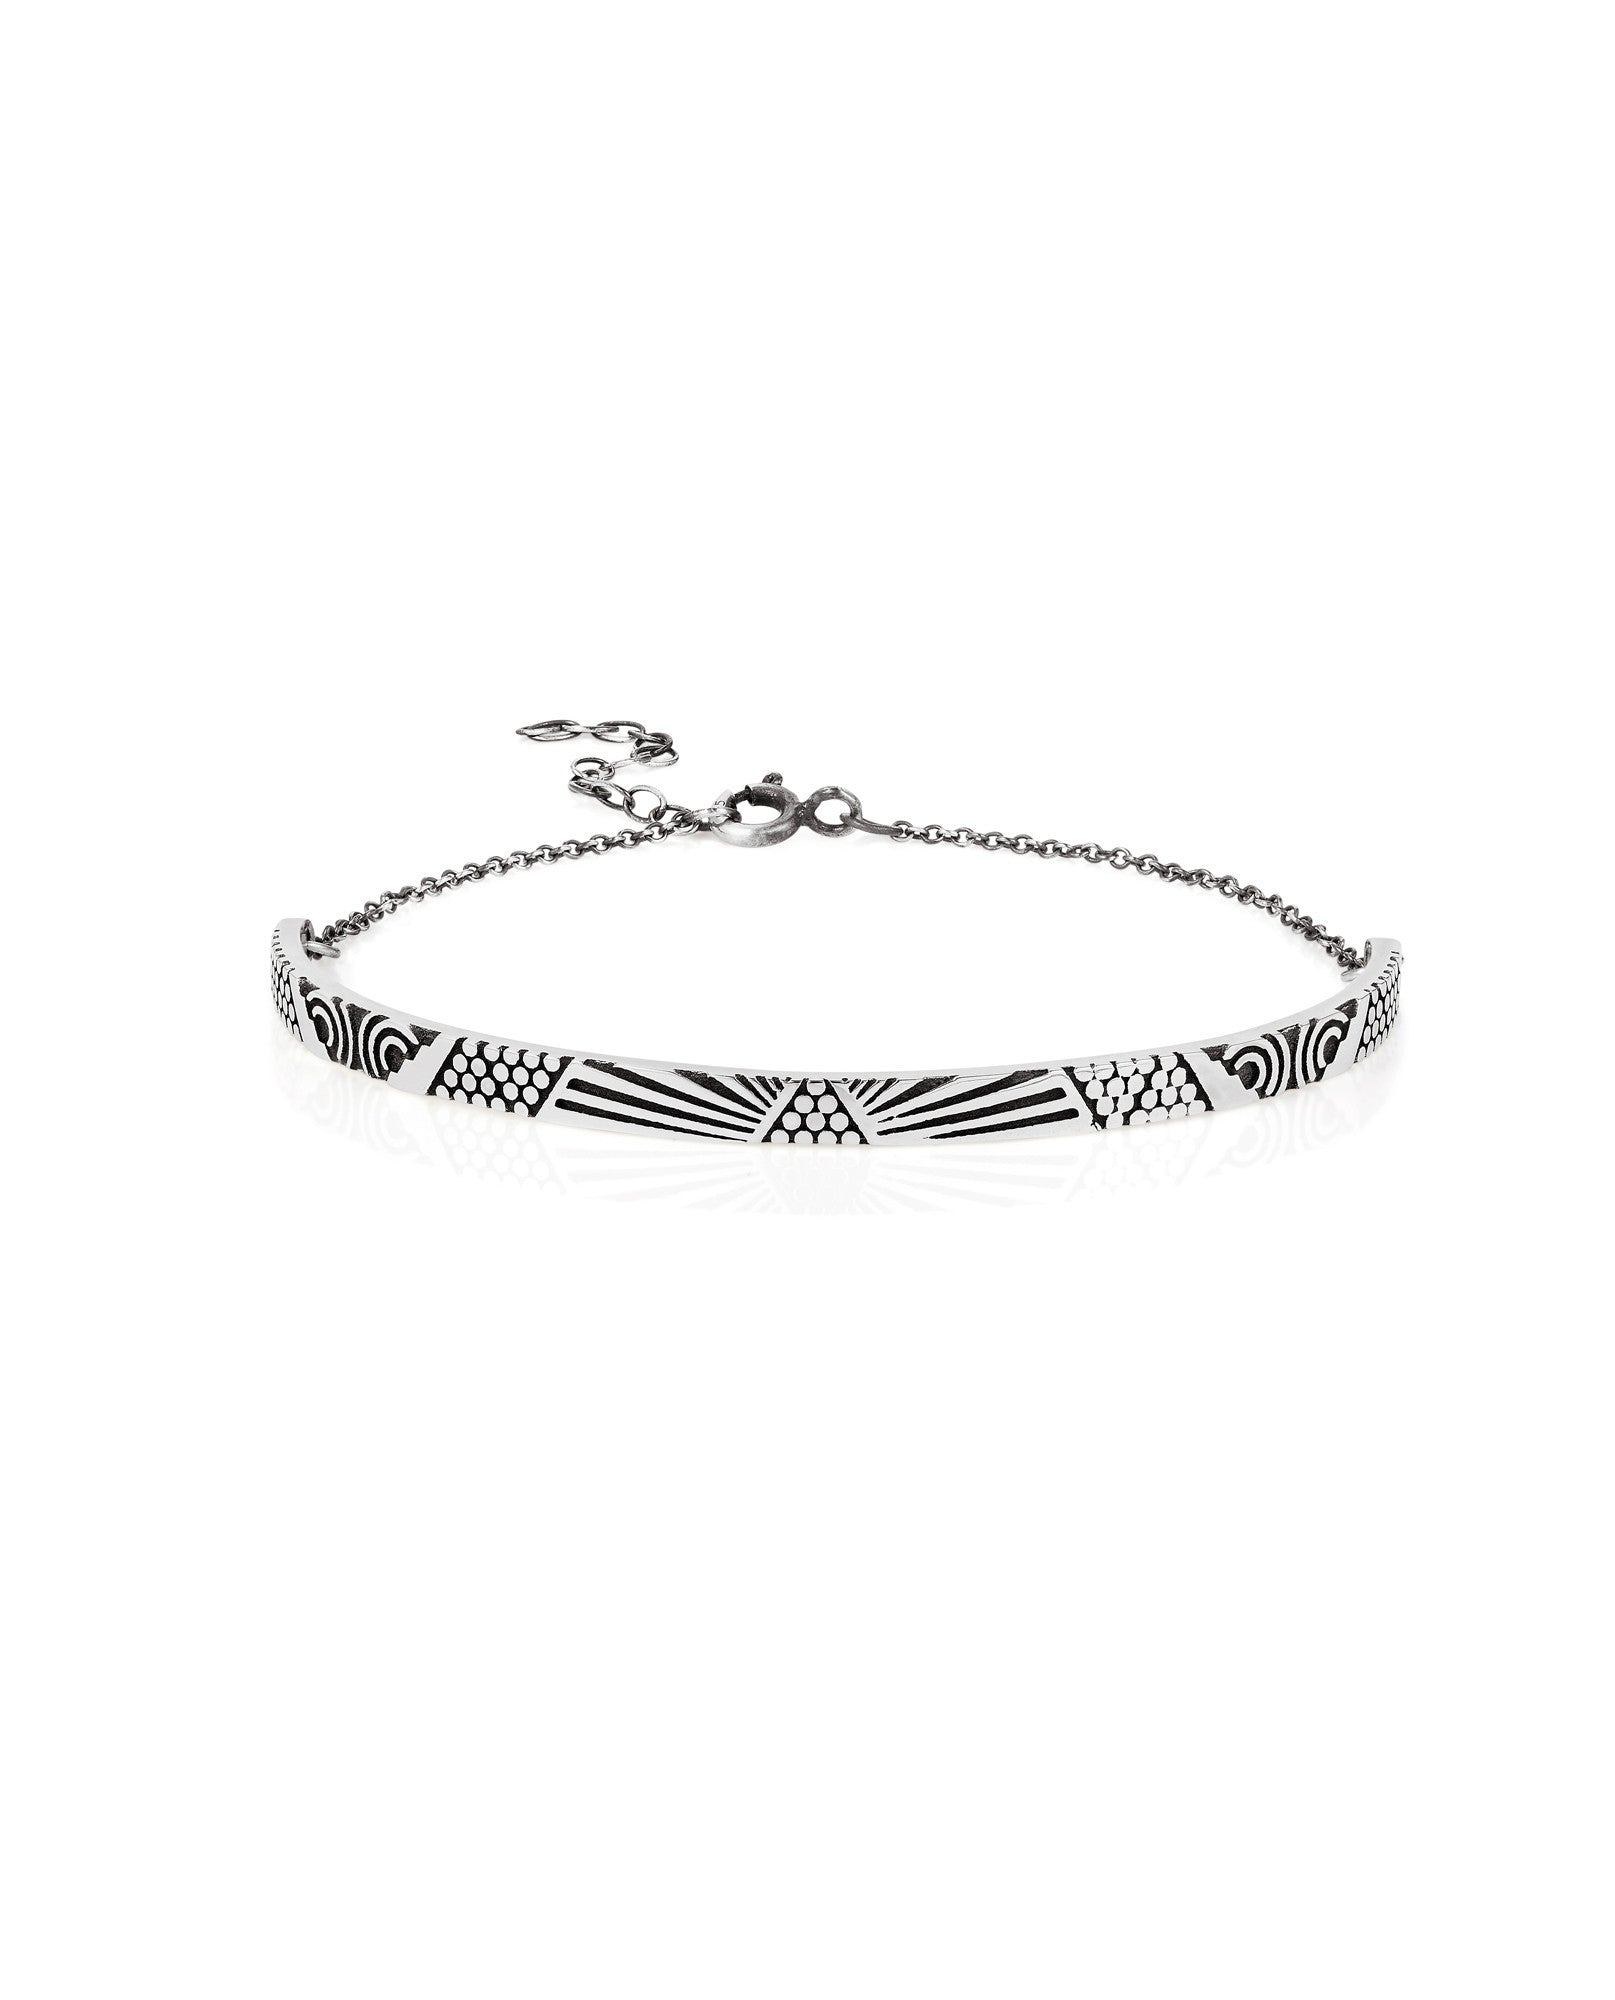 Lee Renée - Peruvian Bracelet - Silver - The Velvet Closet - 1